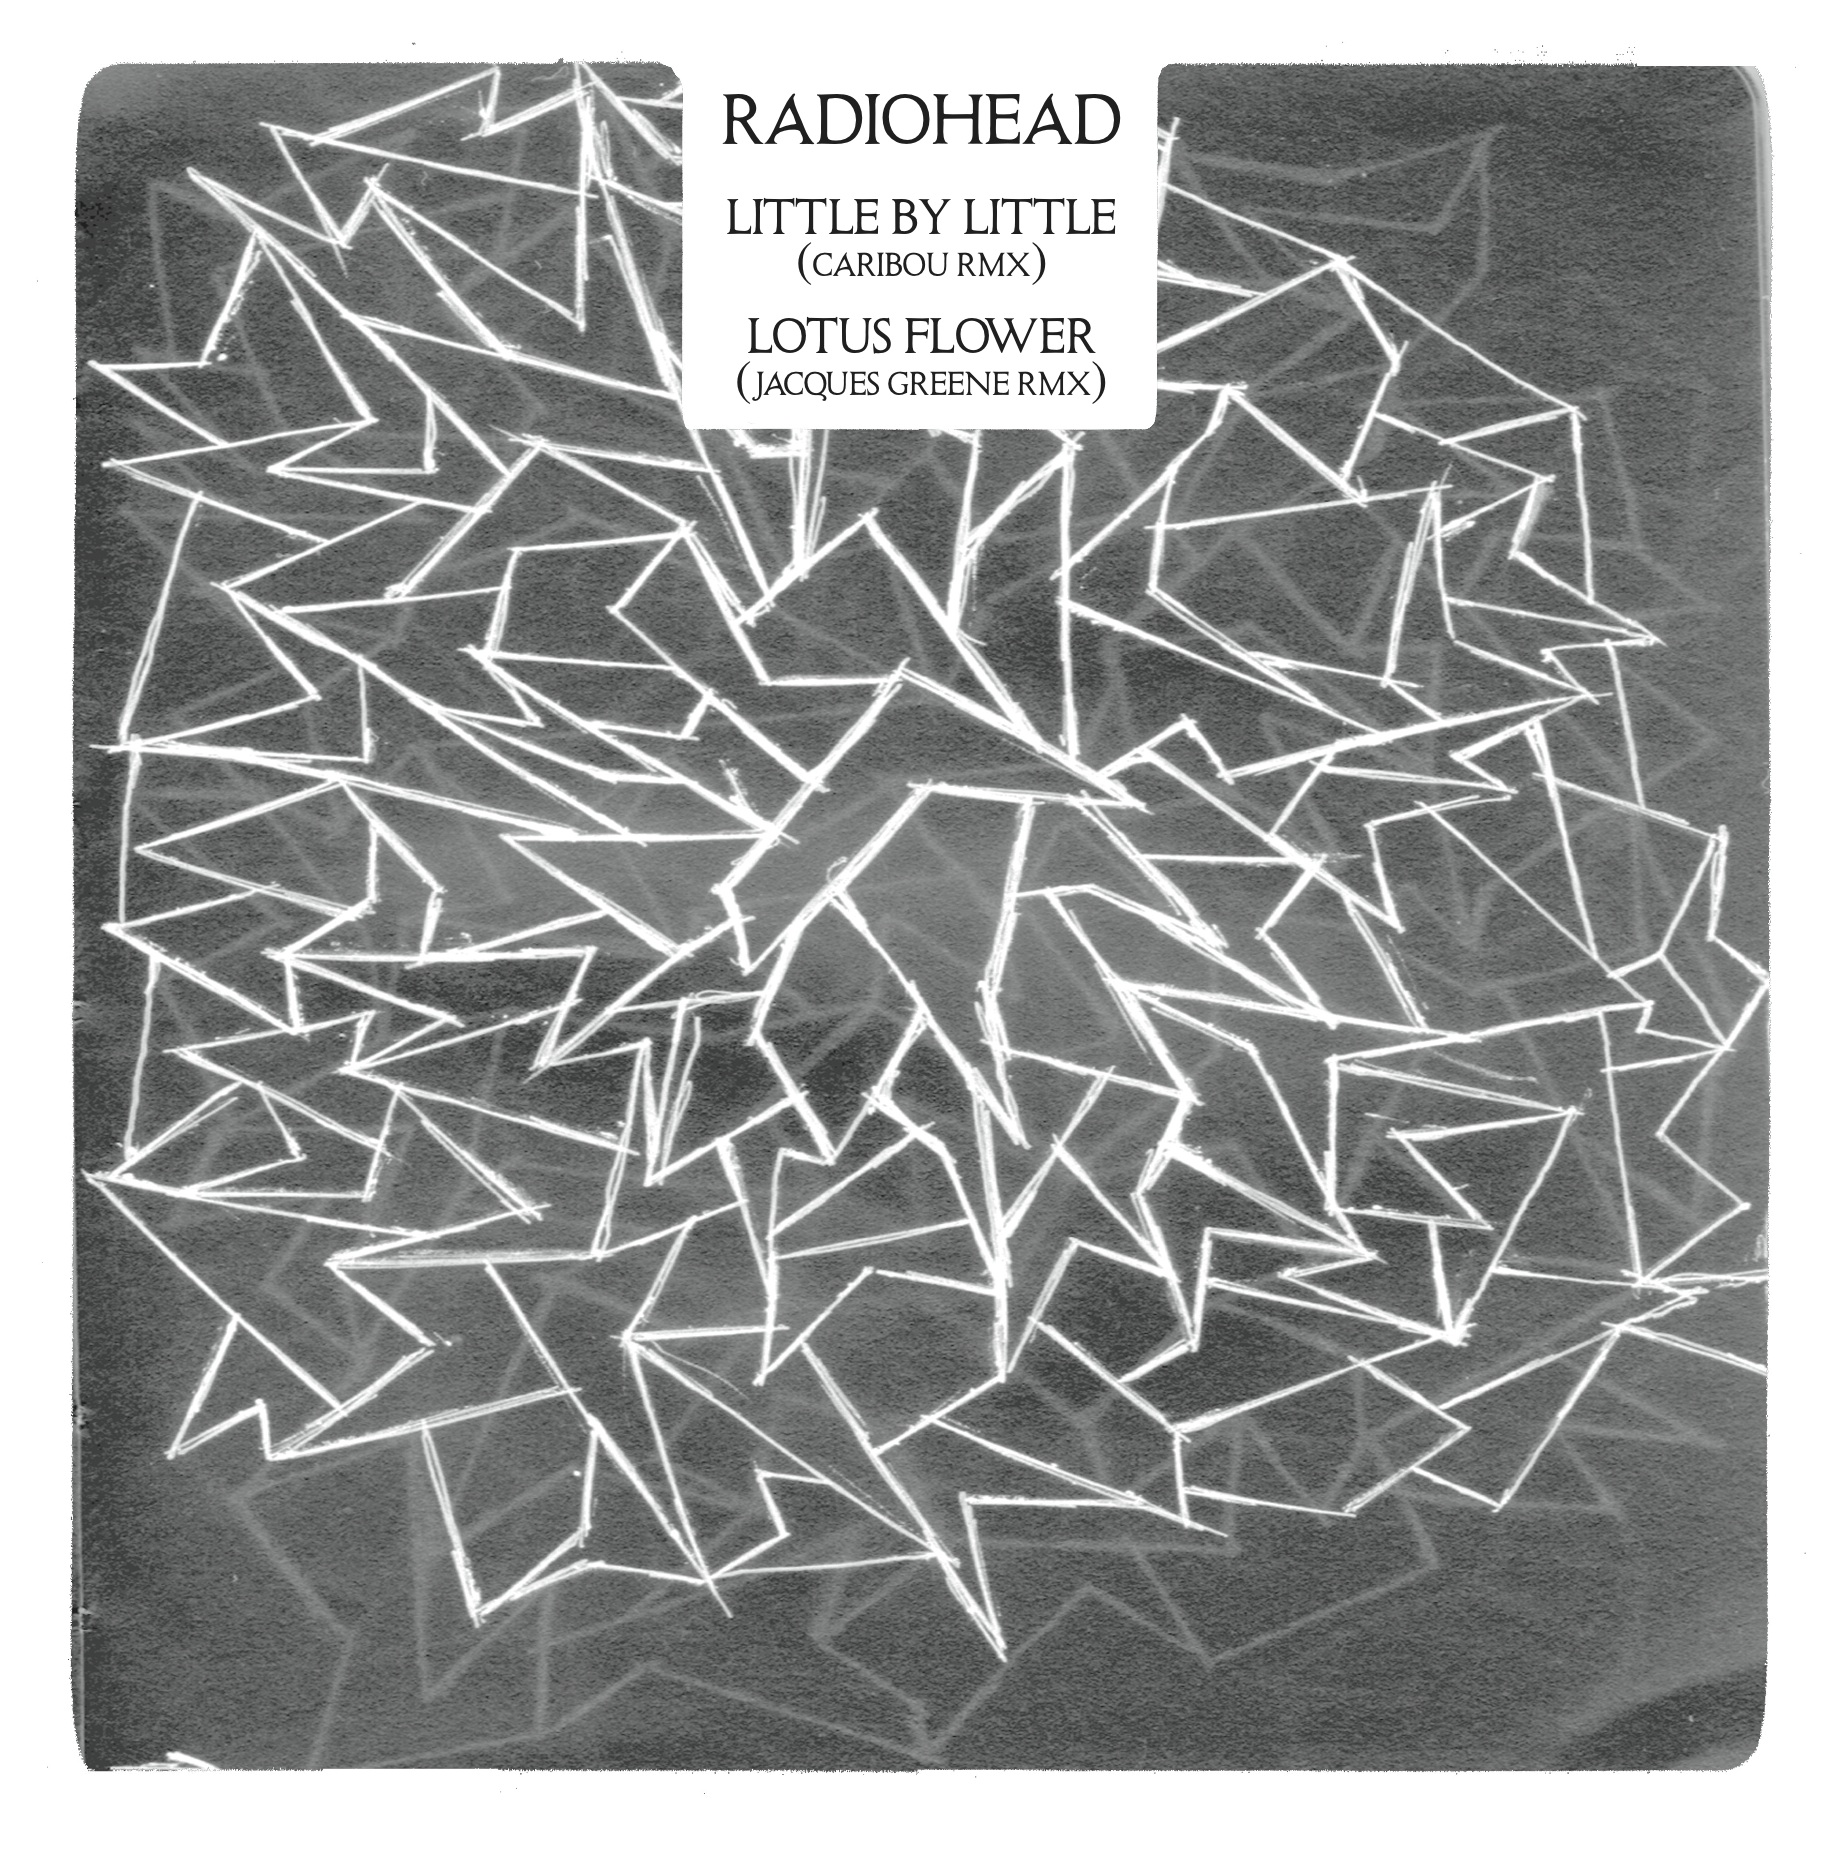 At ls radiohead lotus flower jacques greene rmx radiohead lotus flower jacques greene rmx izmirmasajfo